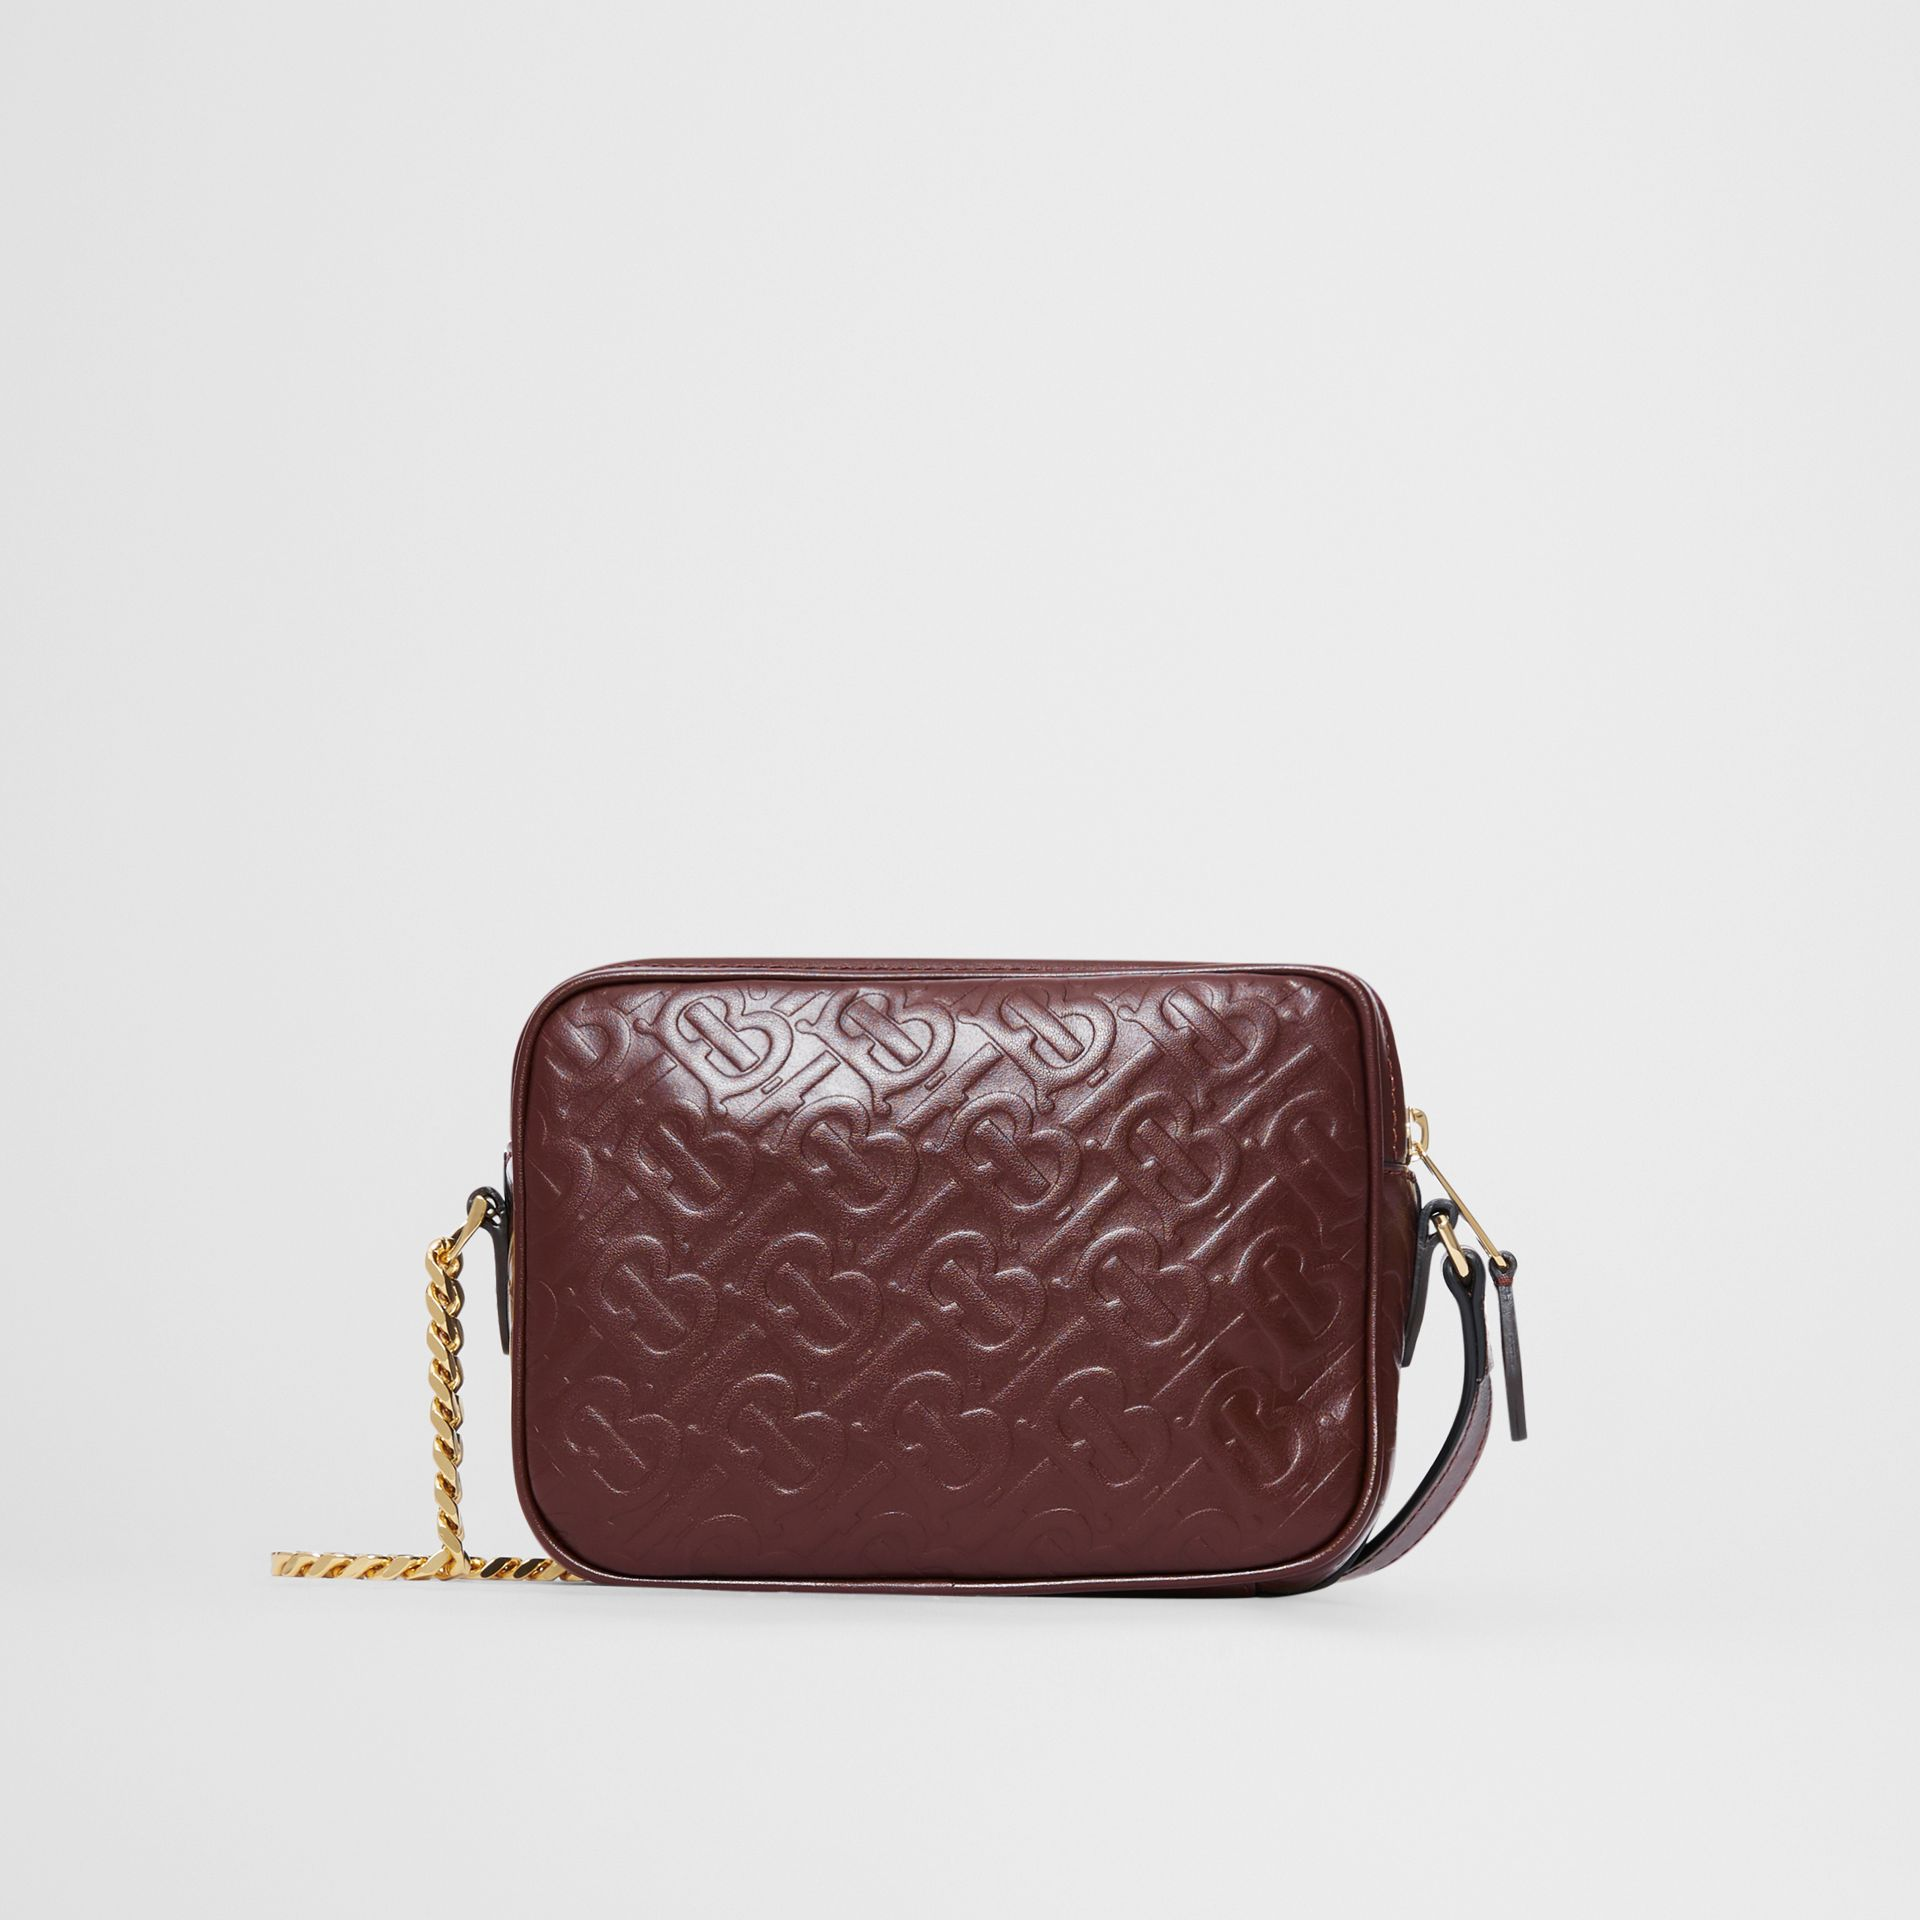 Monogram Leather Camera Bag in Dark Burgundy - Women | Burberry - gallery image 5